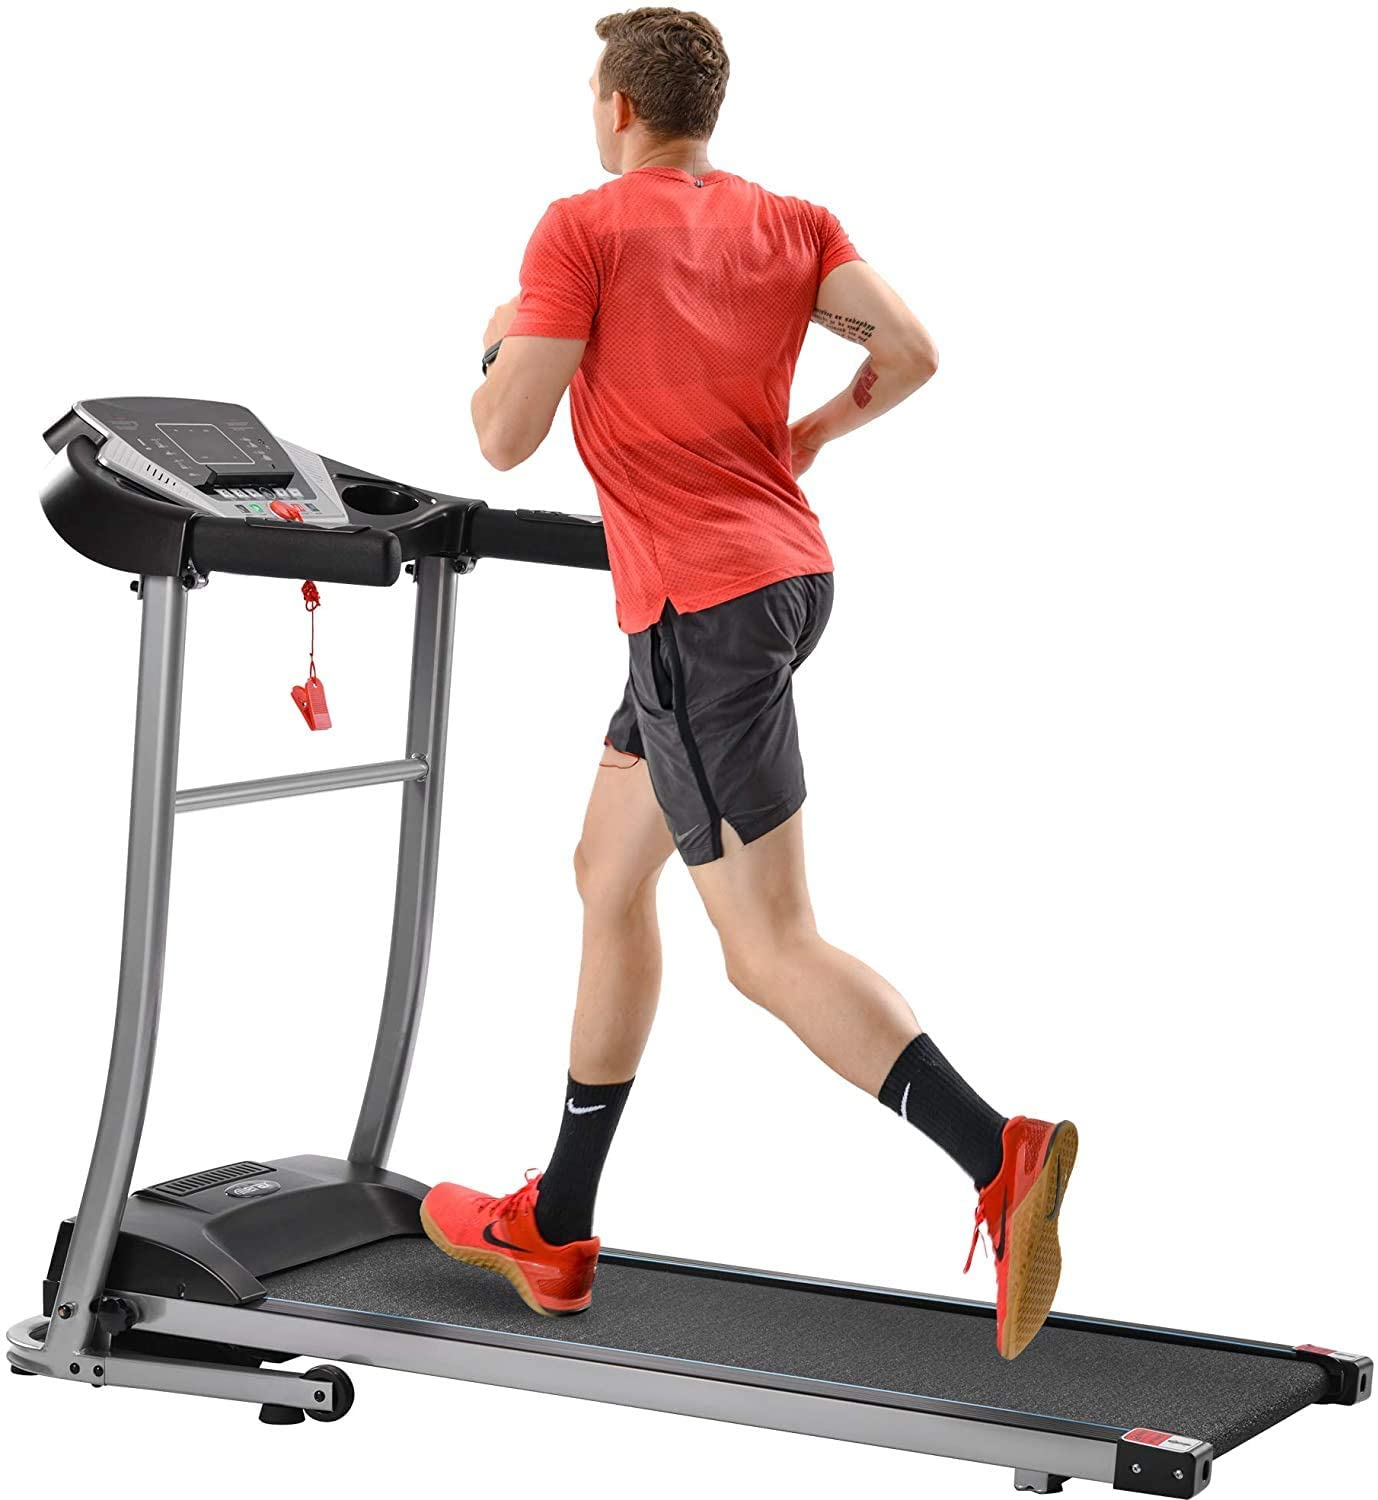 Electric Motorized Treadmill for Home